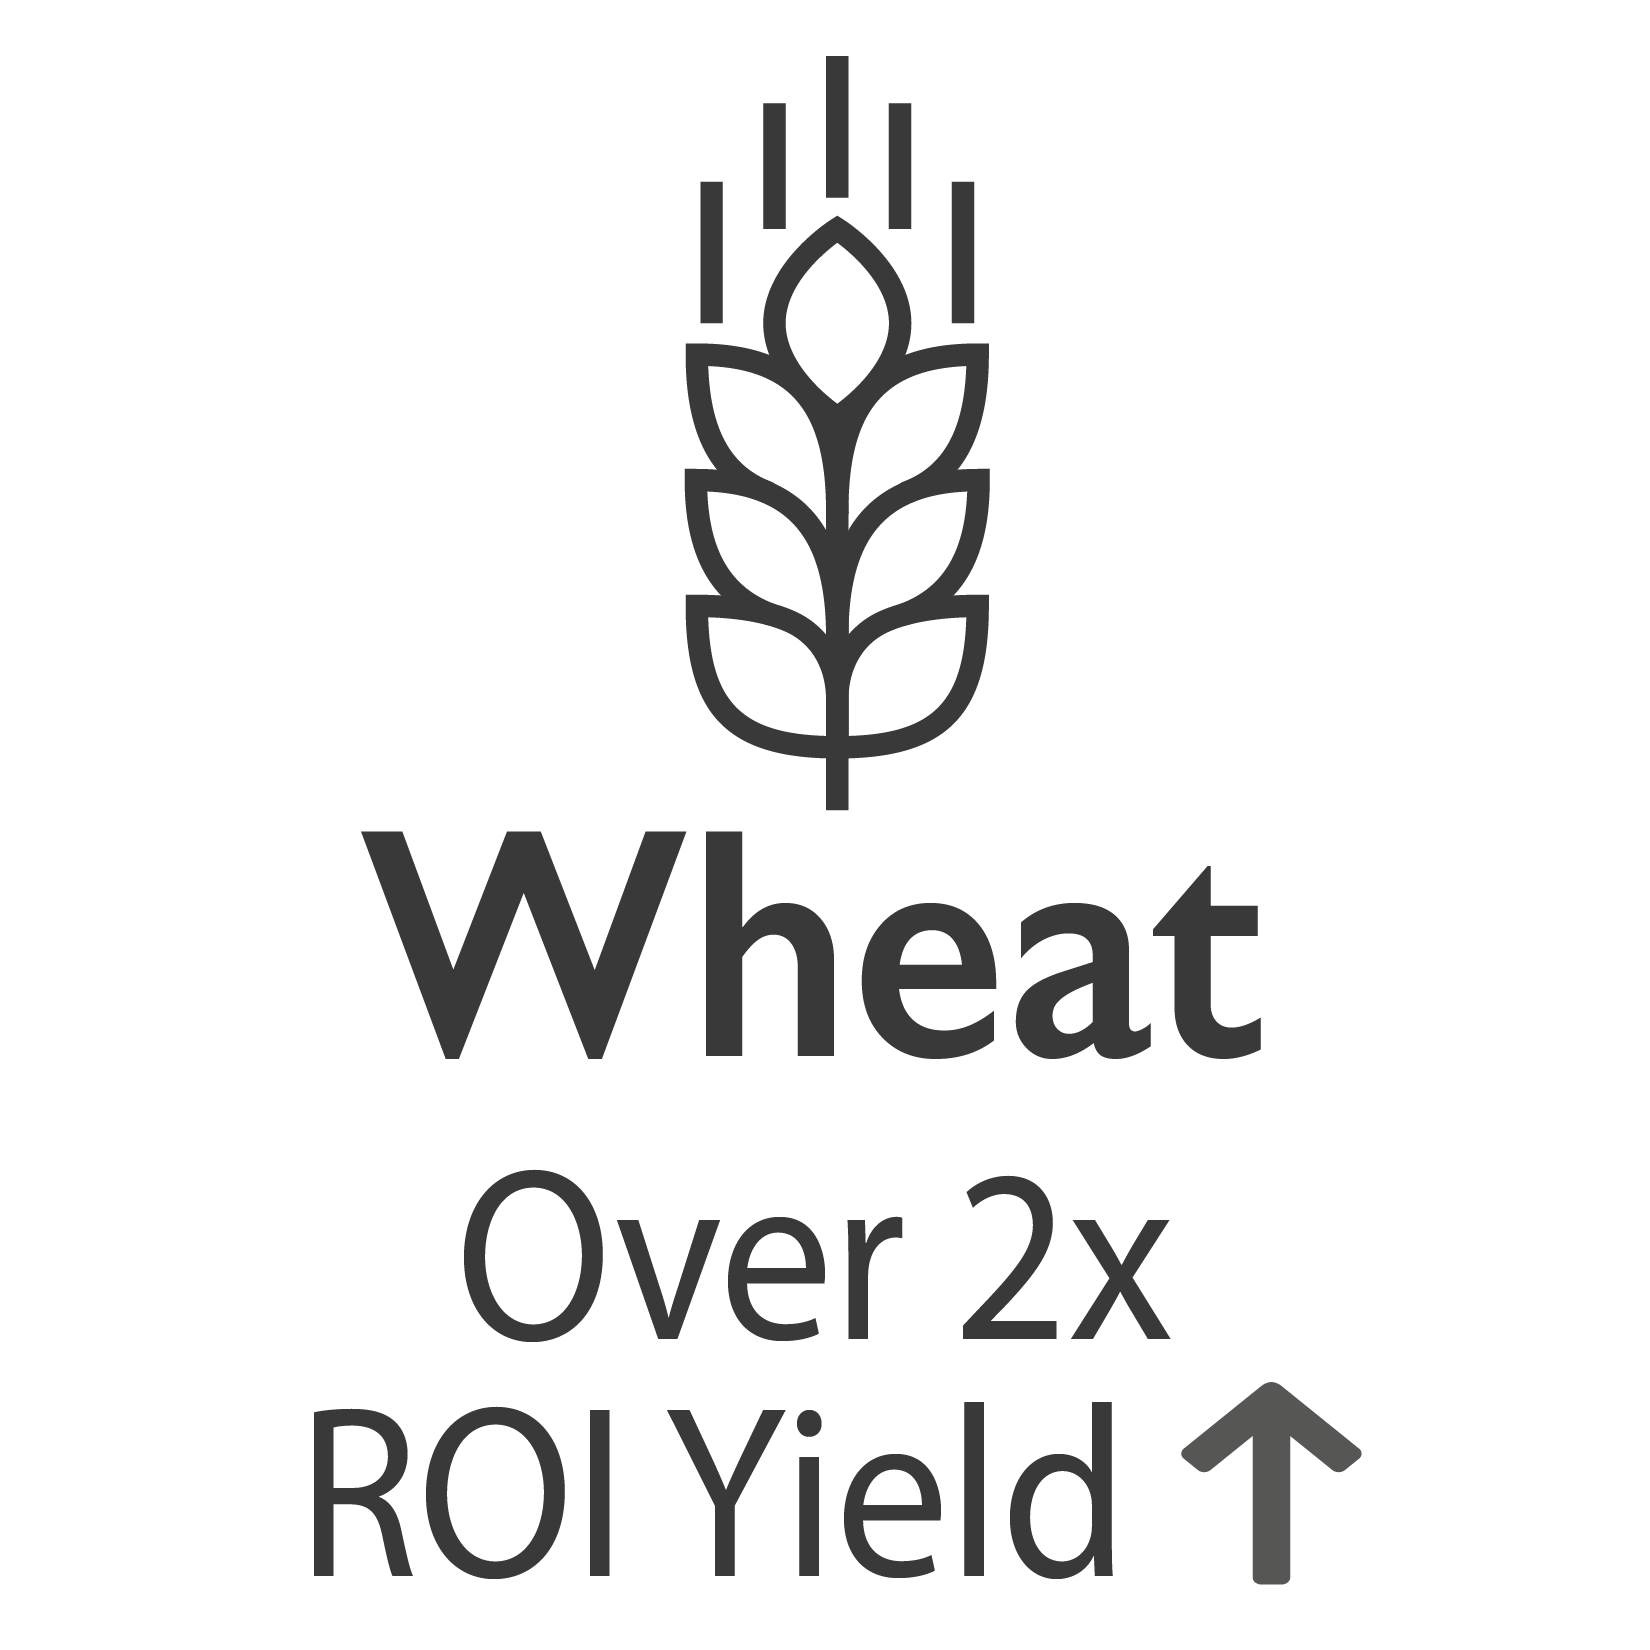 Wheat ROI Yield